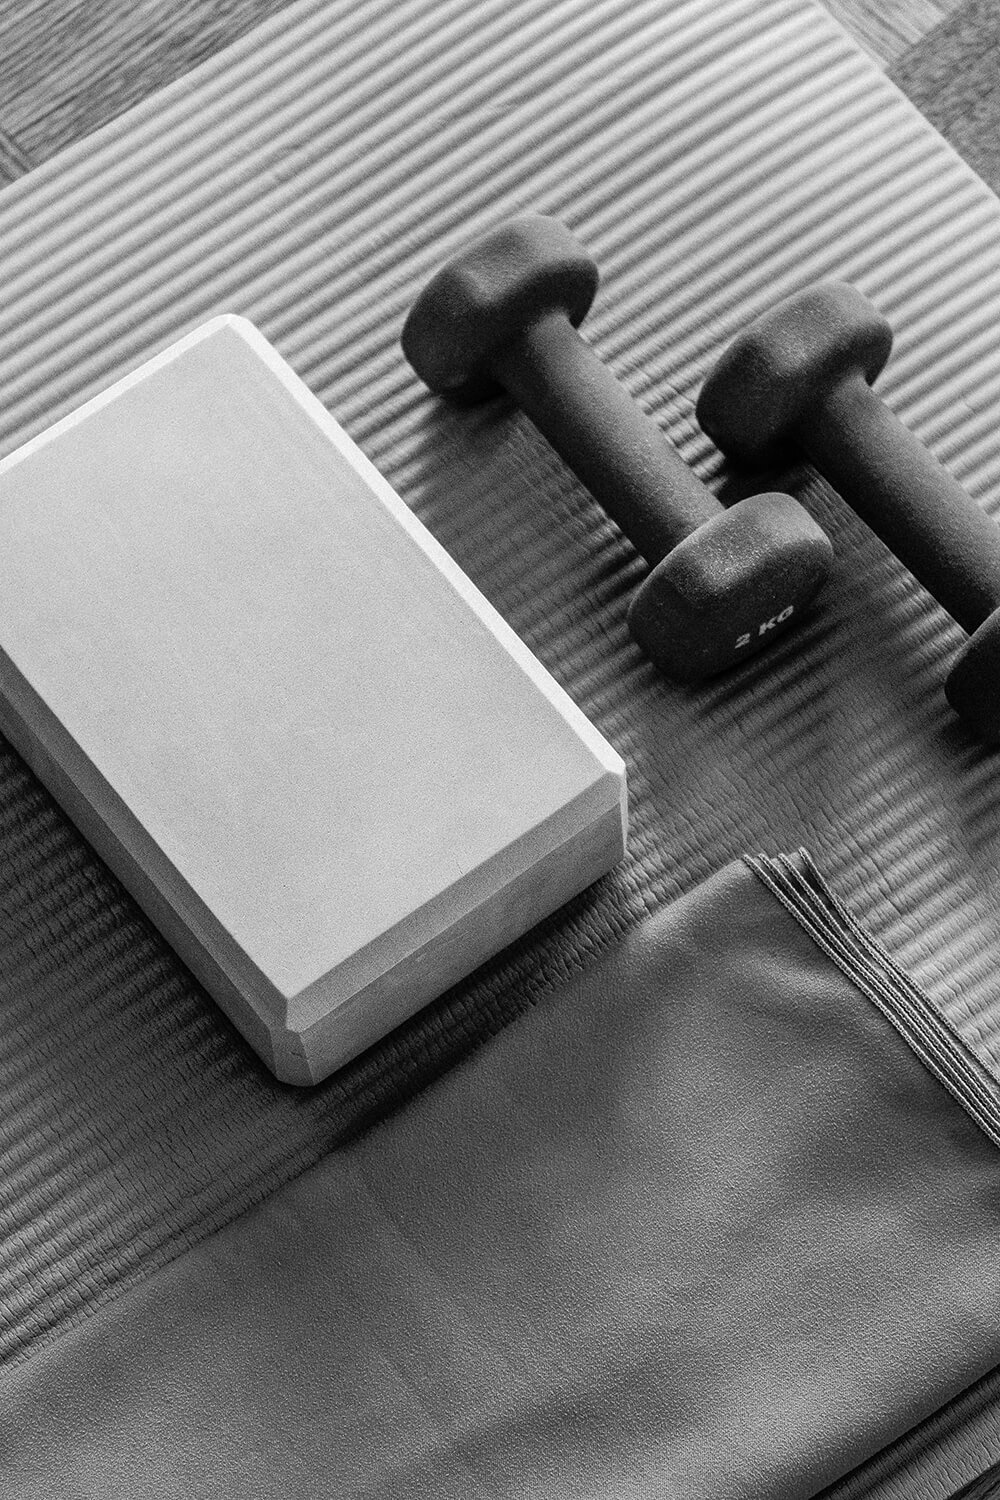 Yoga brick and dumbbell weights